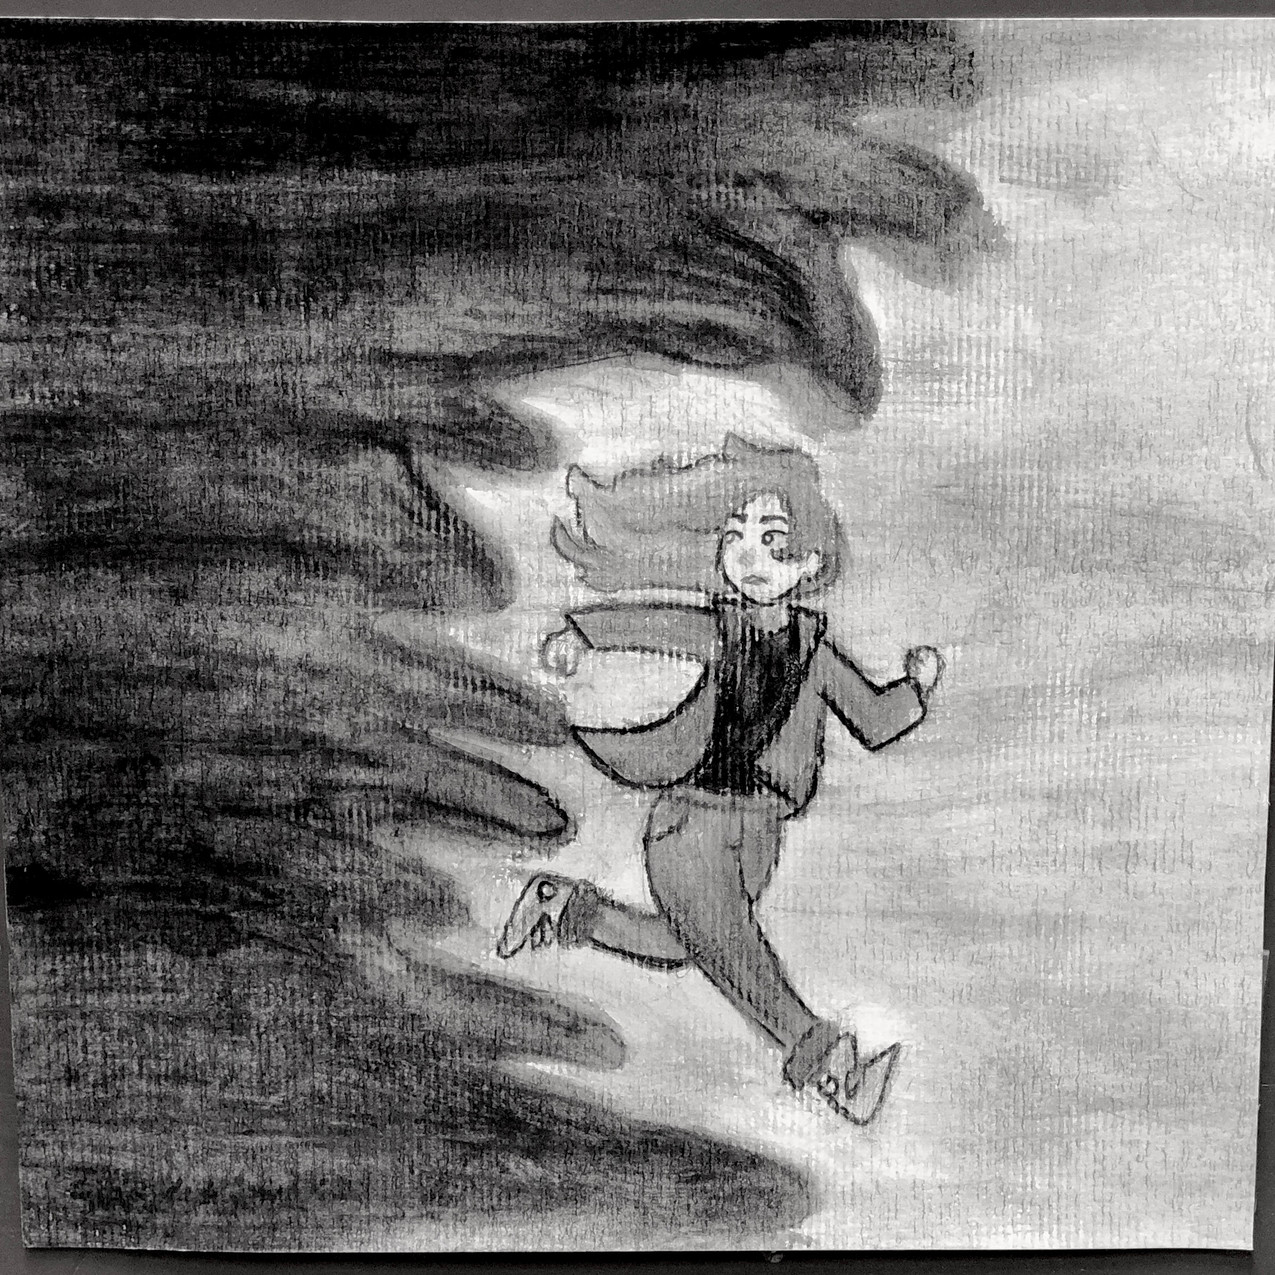 """Artist: Hailey Black, 8th Grade Inspired by a Poem: """"Please don't let it get to me  I don't want to give up that easily But the darkness keeps chasing me"""" The Darkness Keeps Chasing me by Grace Vanderwaal"""